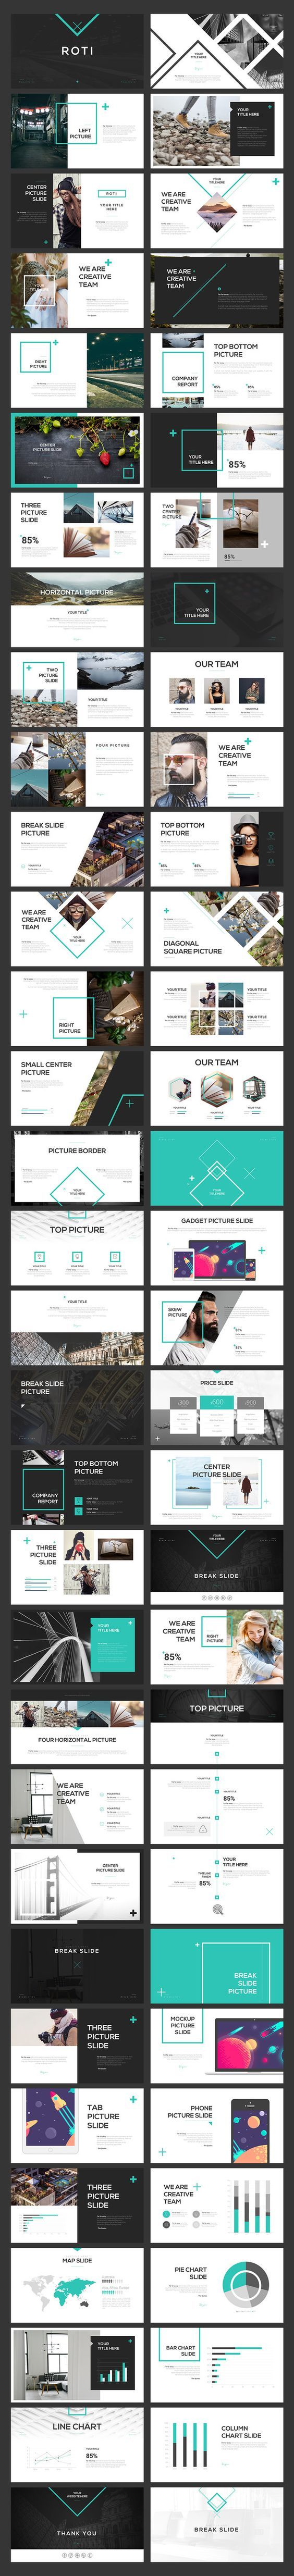 ROTI PowerPoint Template - Presentations - 6: